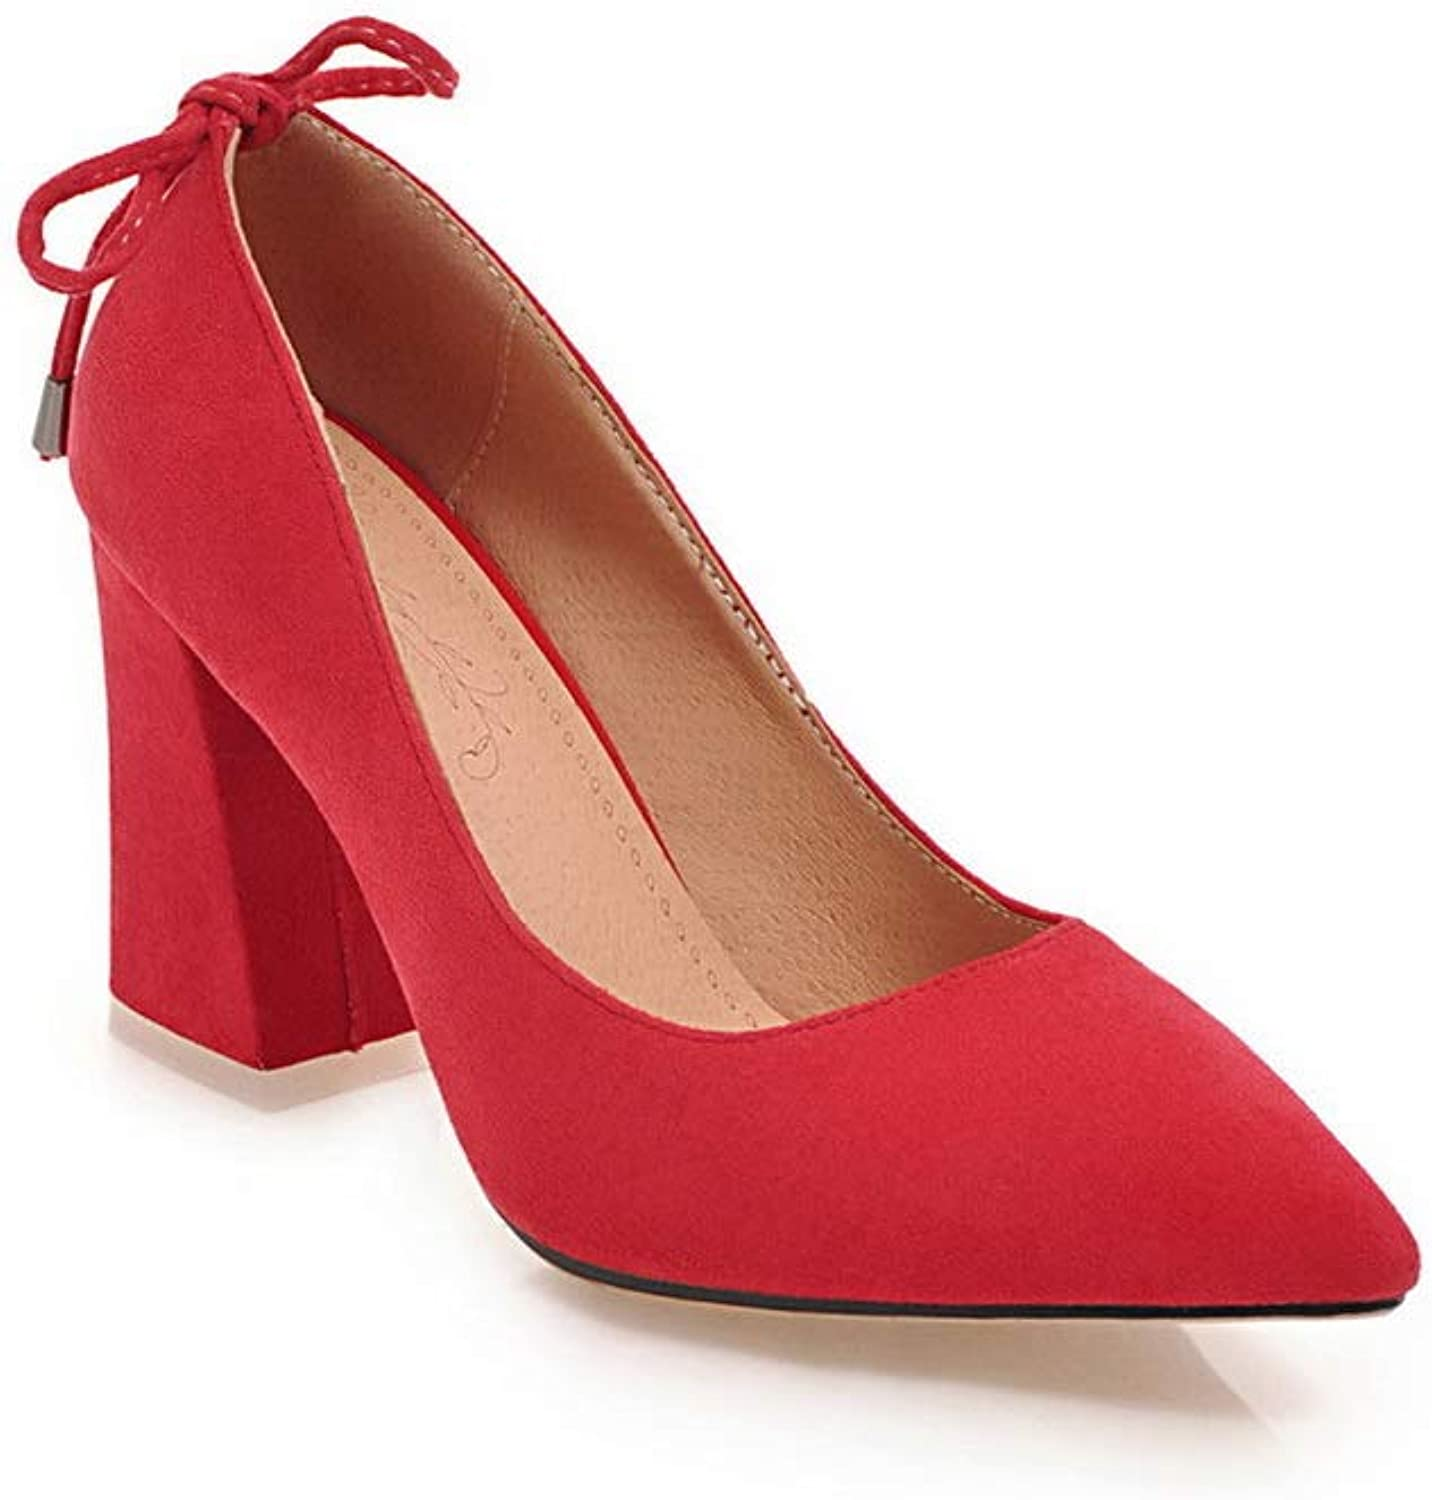 1TO9 Womens Solid Nubuck Structured Urethane Pumps shoes MMS06289